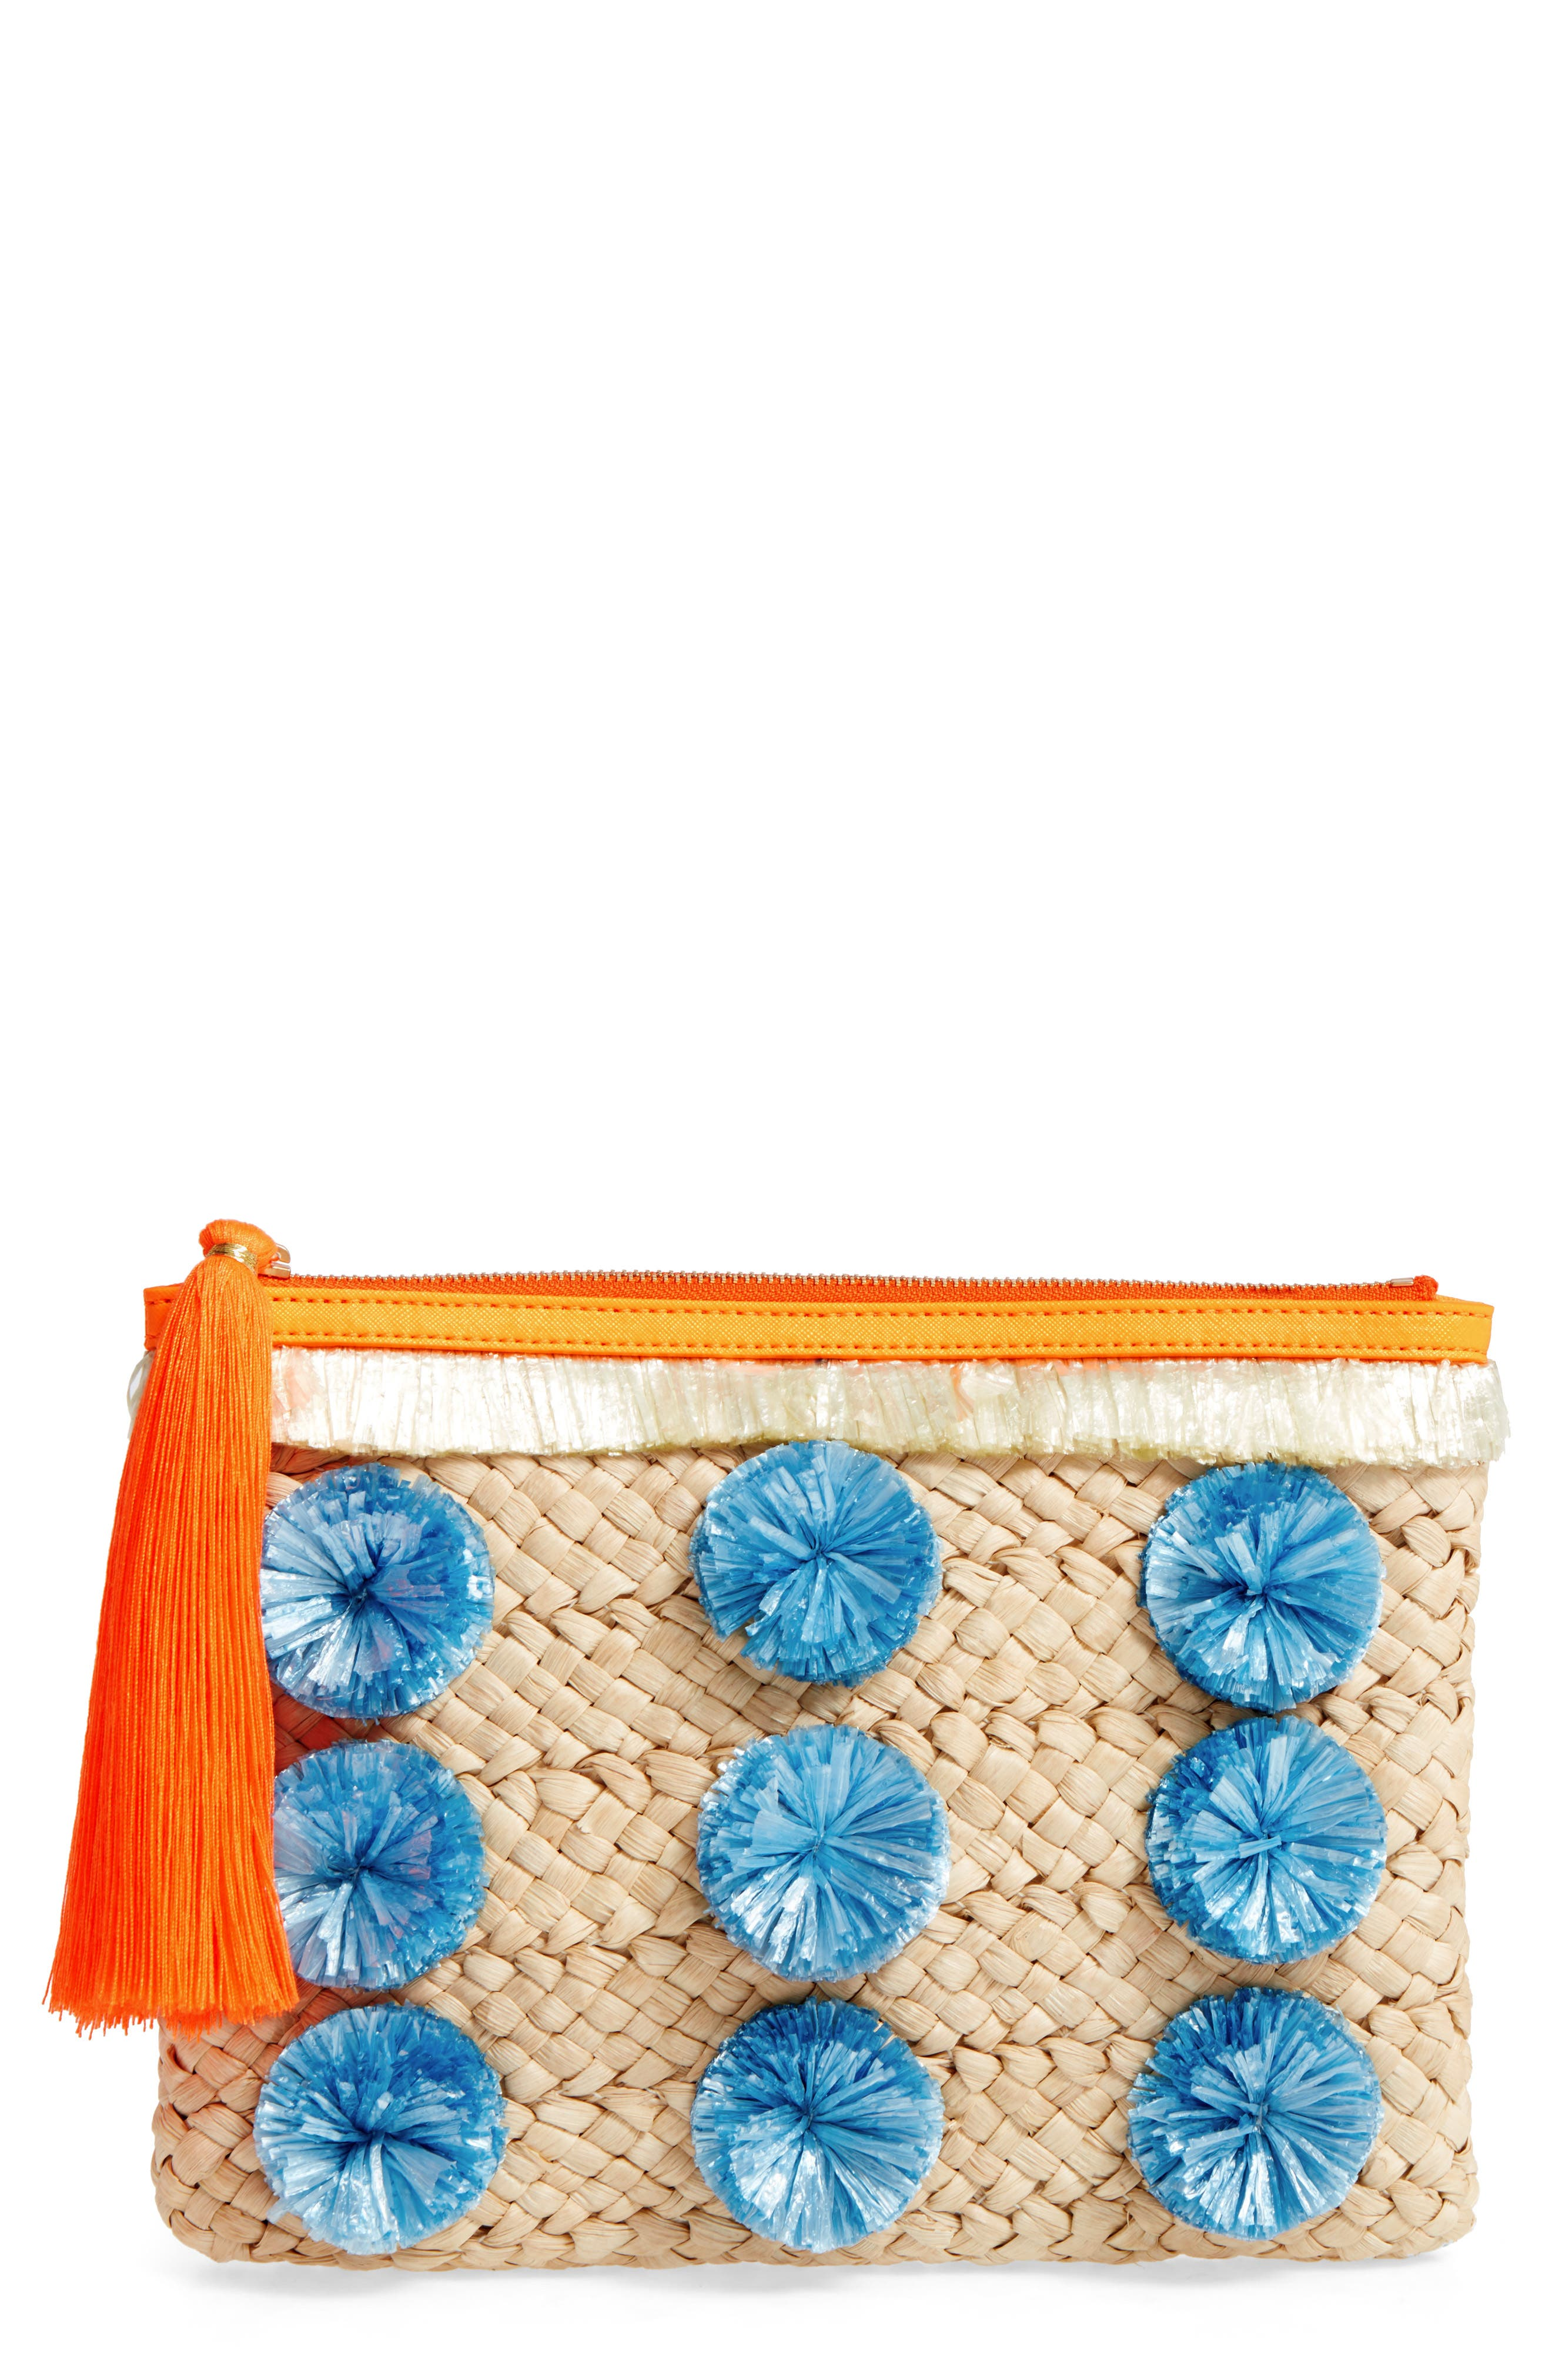 Pompom Straw Clutch,                             Main thumbnail 1, color,                             200